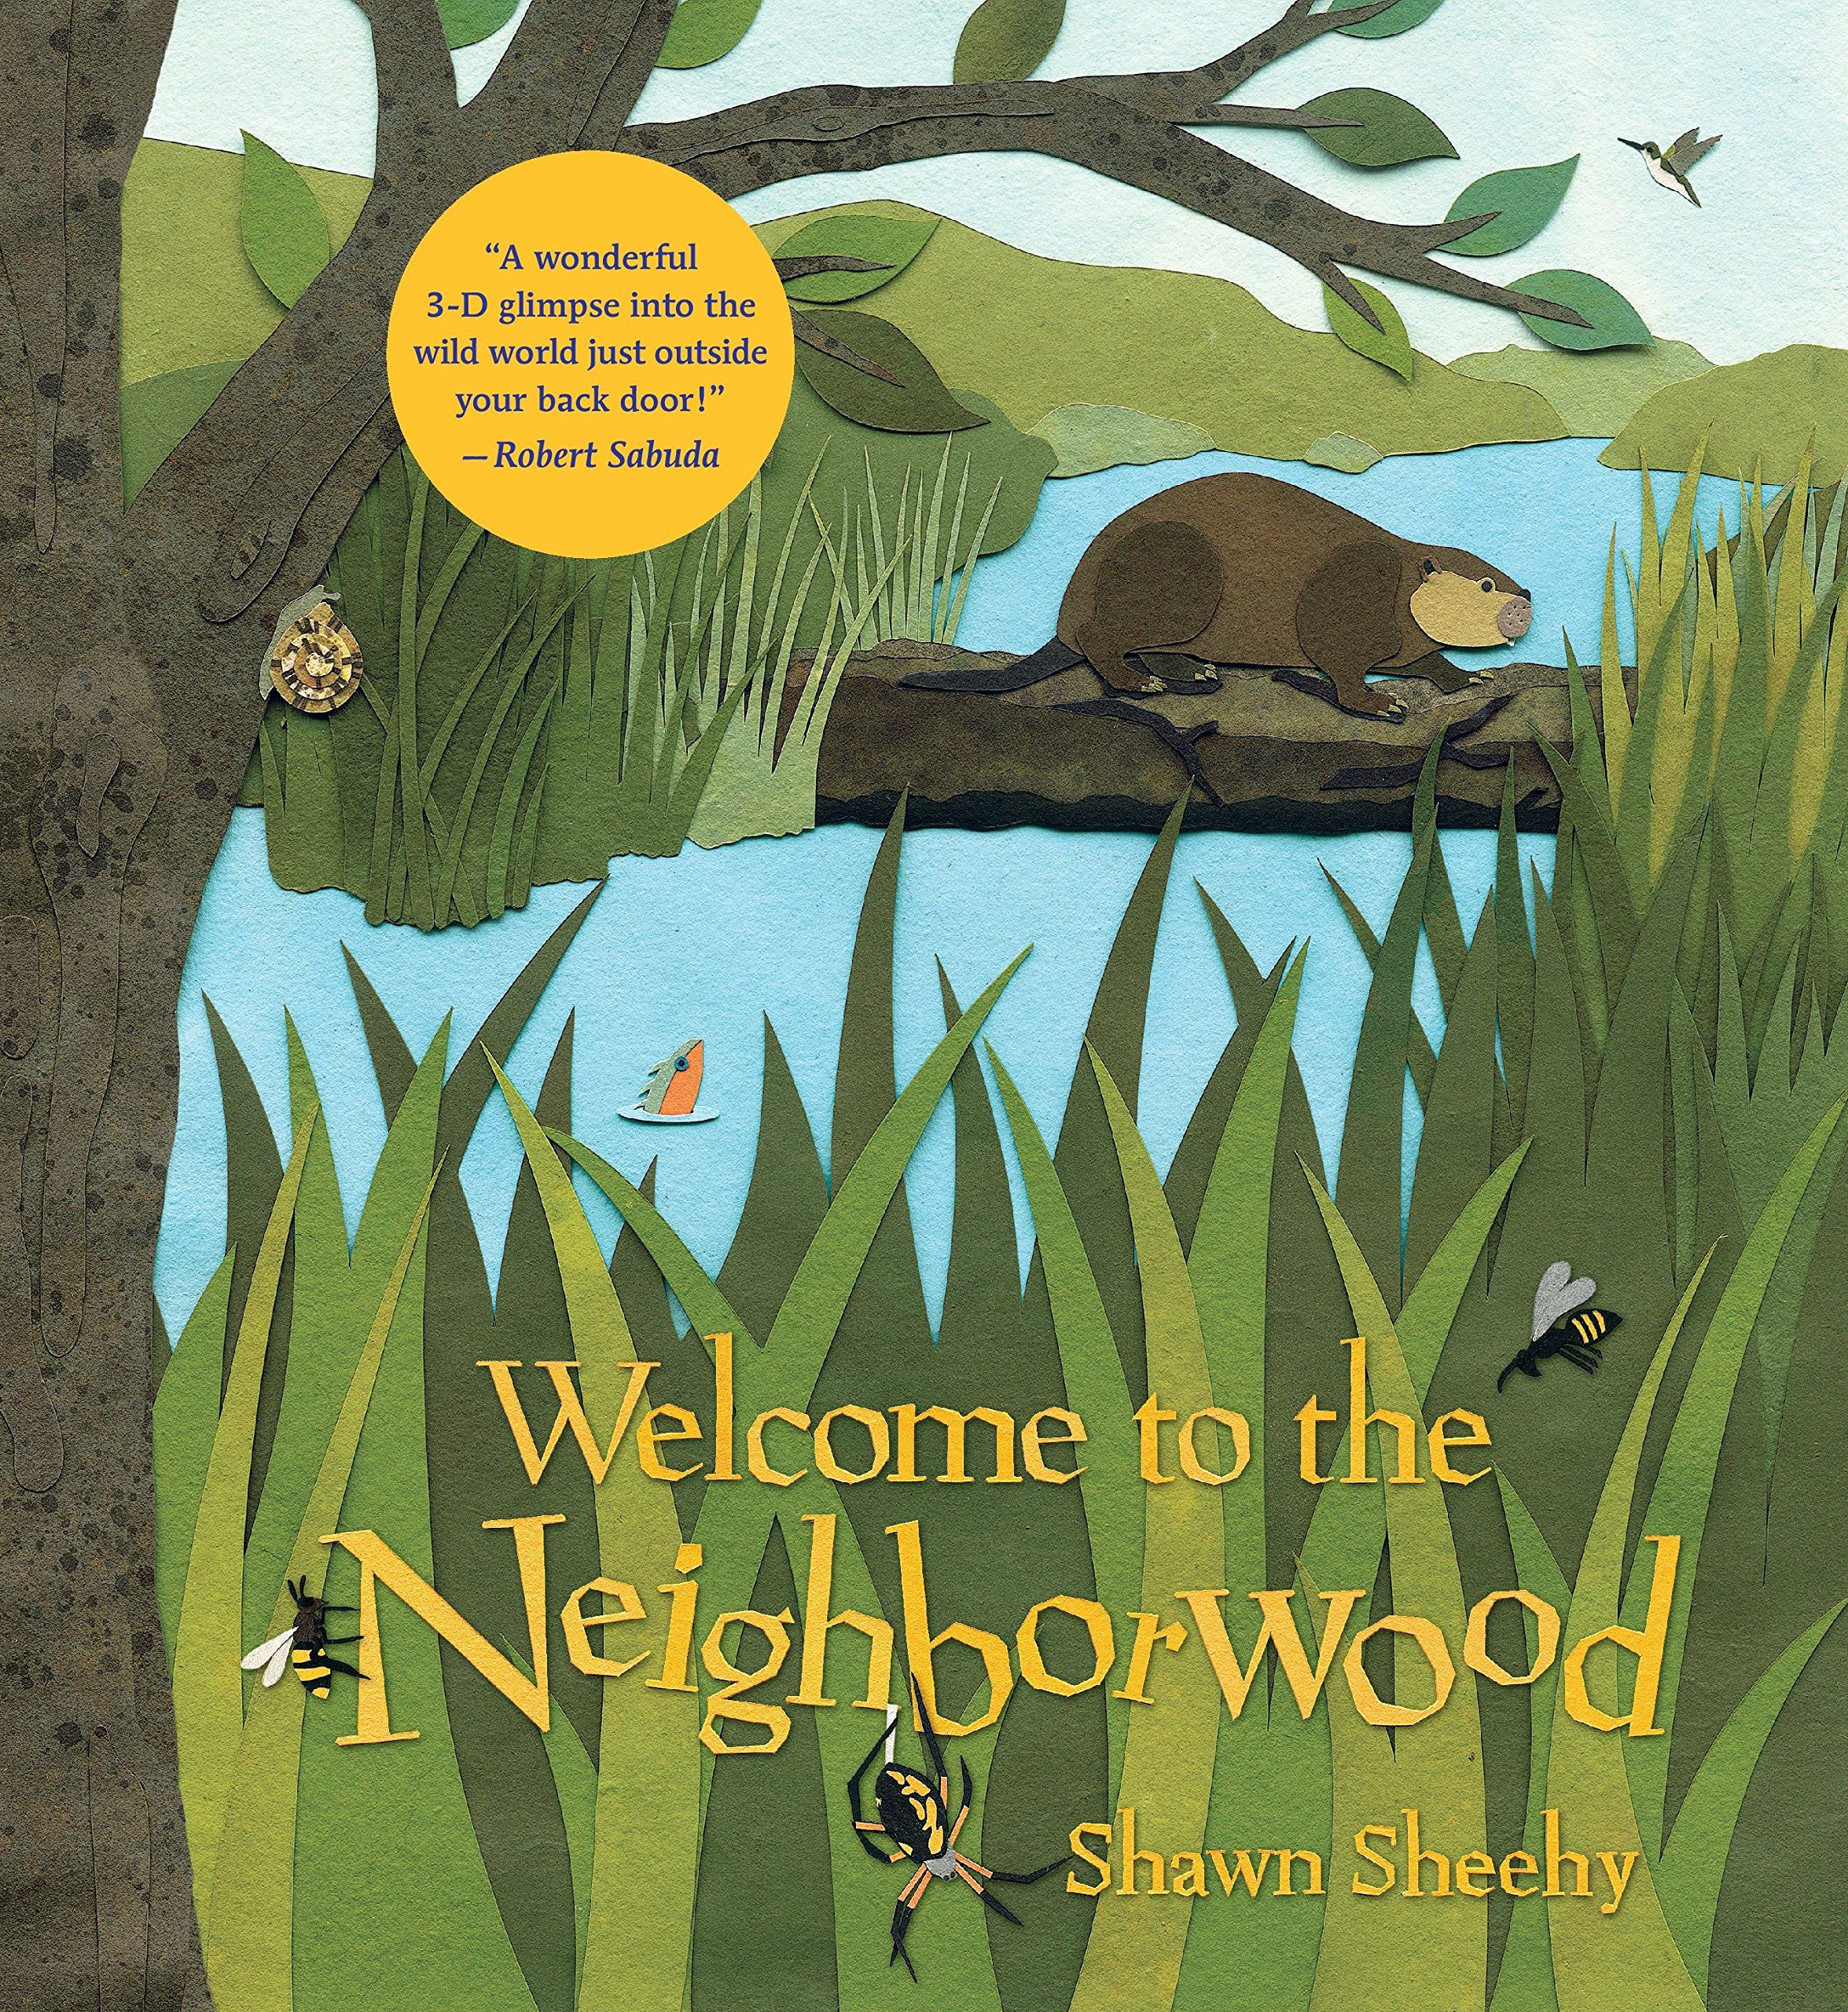 Welcome To The Neighborwood Shawn Sheehy 9780763665944 3d Plant Cell Diagram From Textbook Image Gallery Books